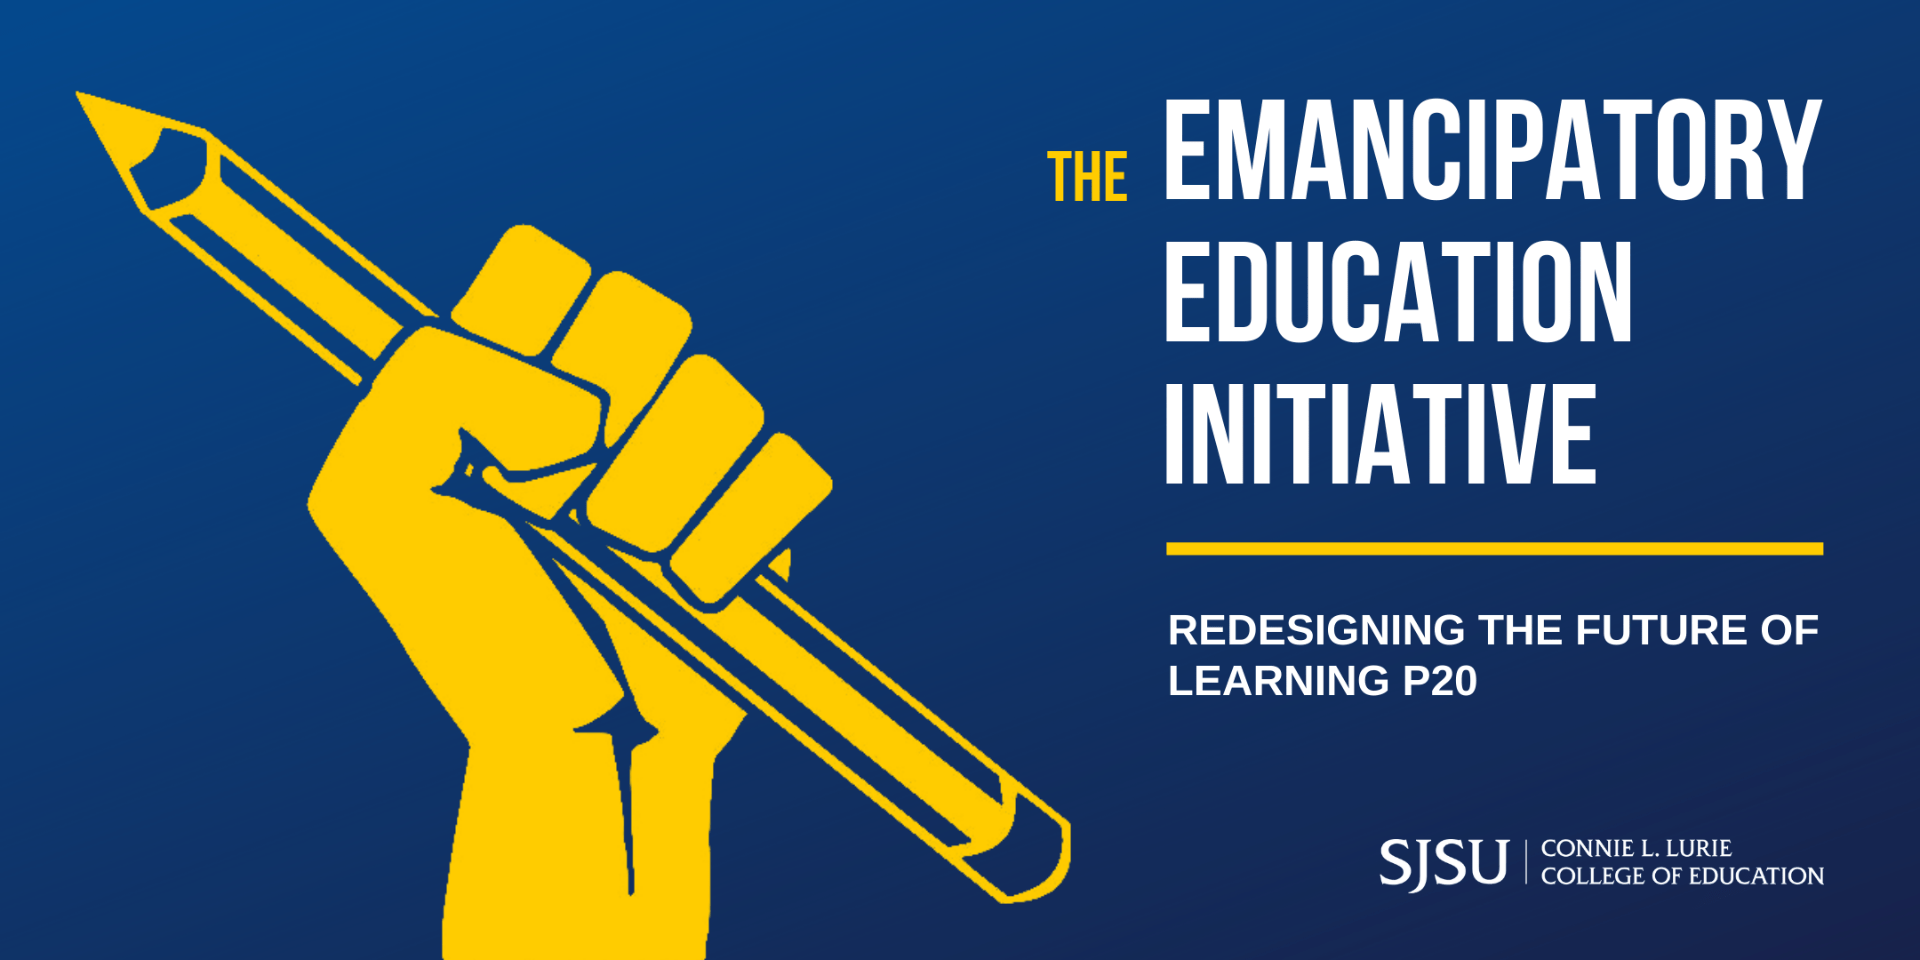 The Emancipatory Education Initiative: Redesigning the Future of Learning P20 with a gold upright fist clenching a pencil.